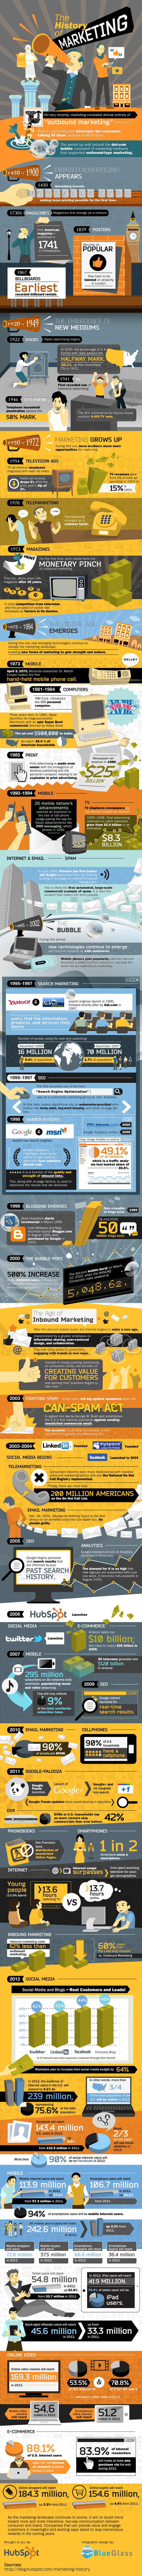 la-historia-del-marketing-infografia